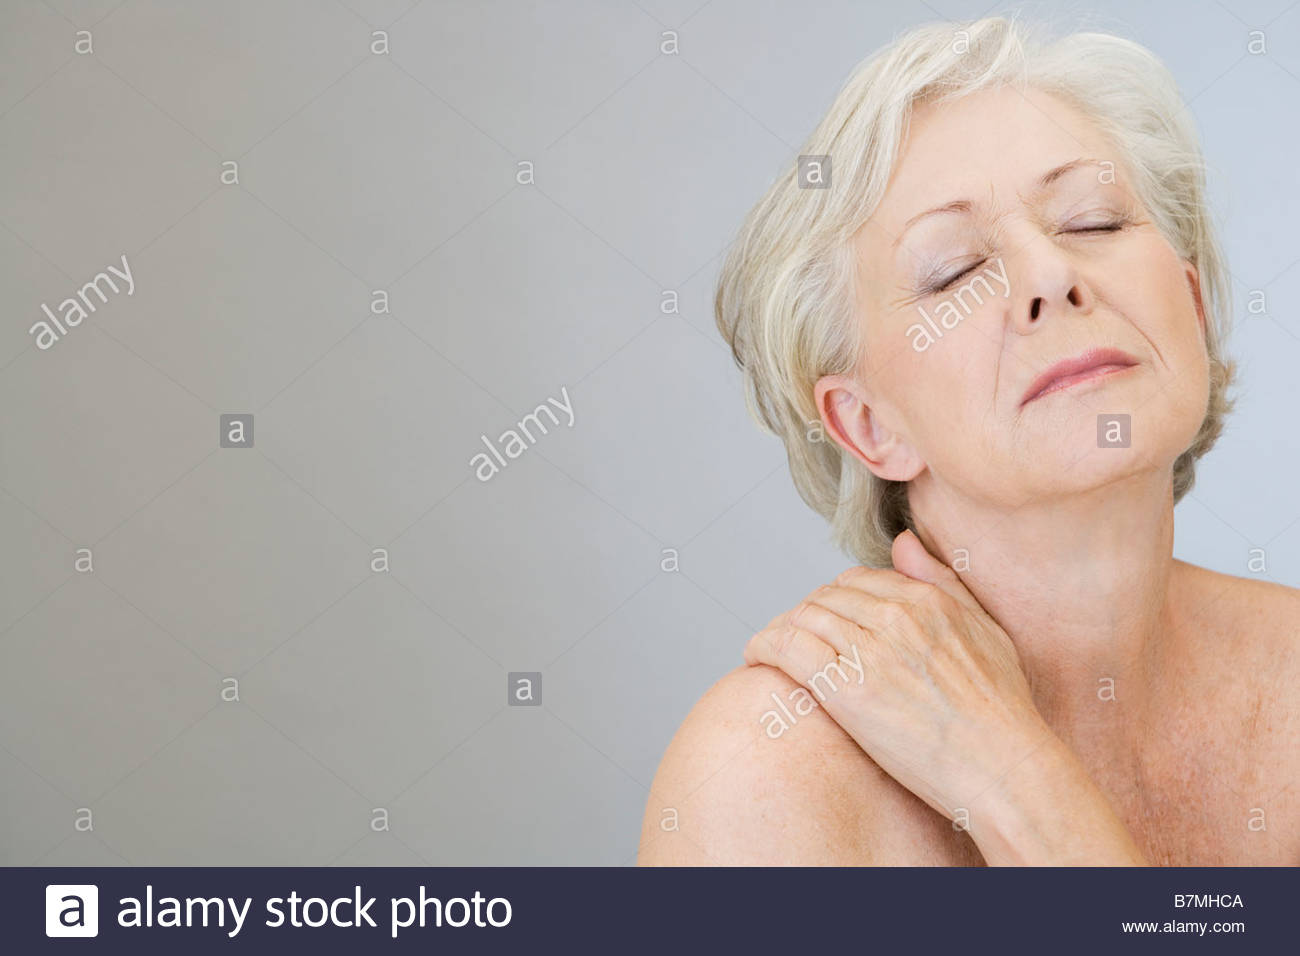 A senior woman with shoulder tension or back ache - Stock Image